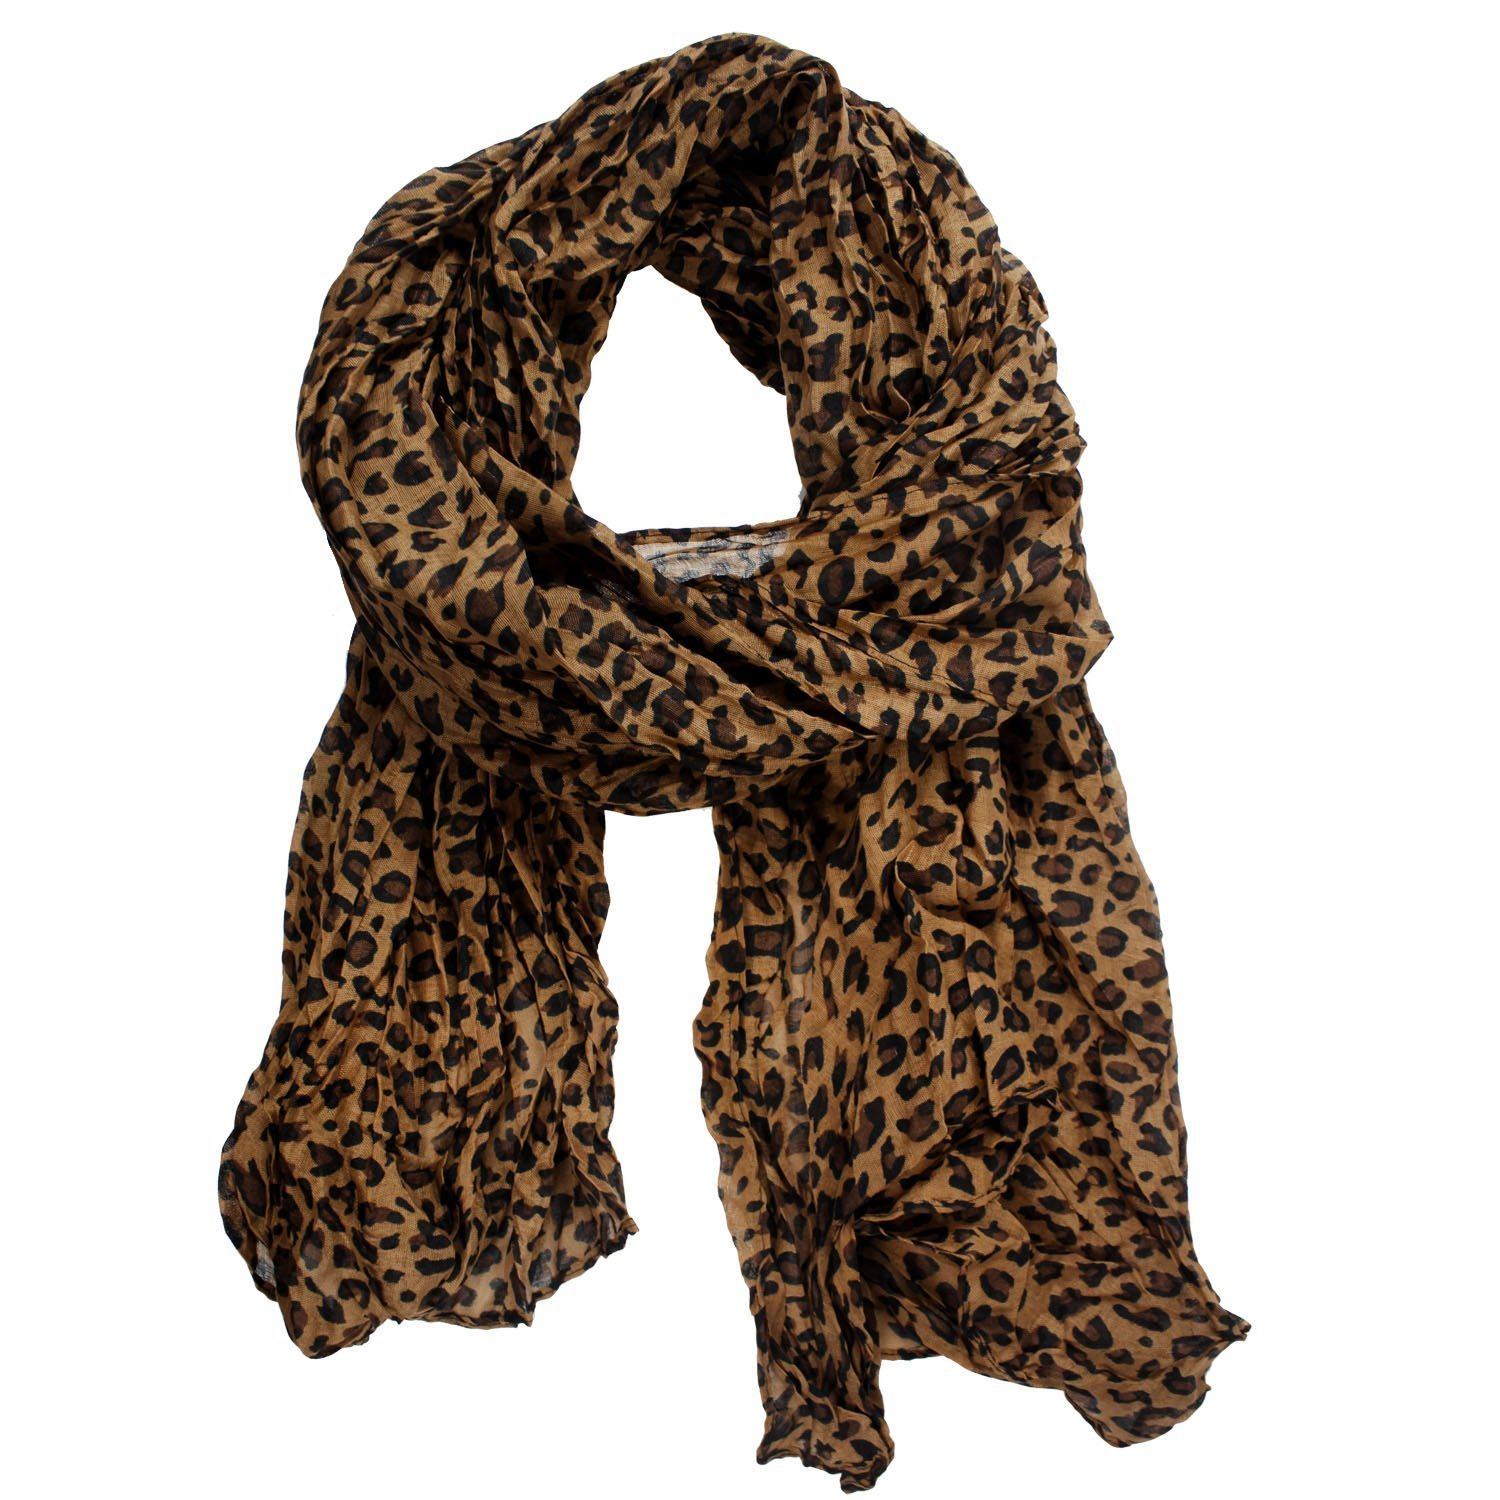 NEWNEW Girl Fashion Leopard Pattern Shawl Scarf Wrap for Women Gifts gaze de paris ...